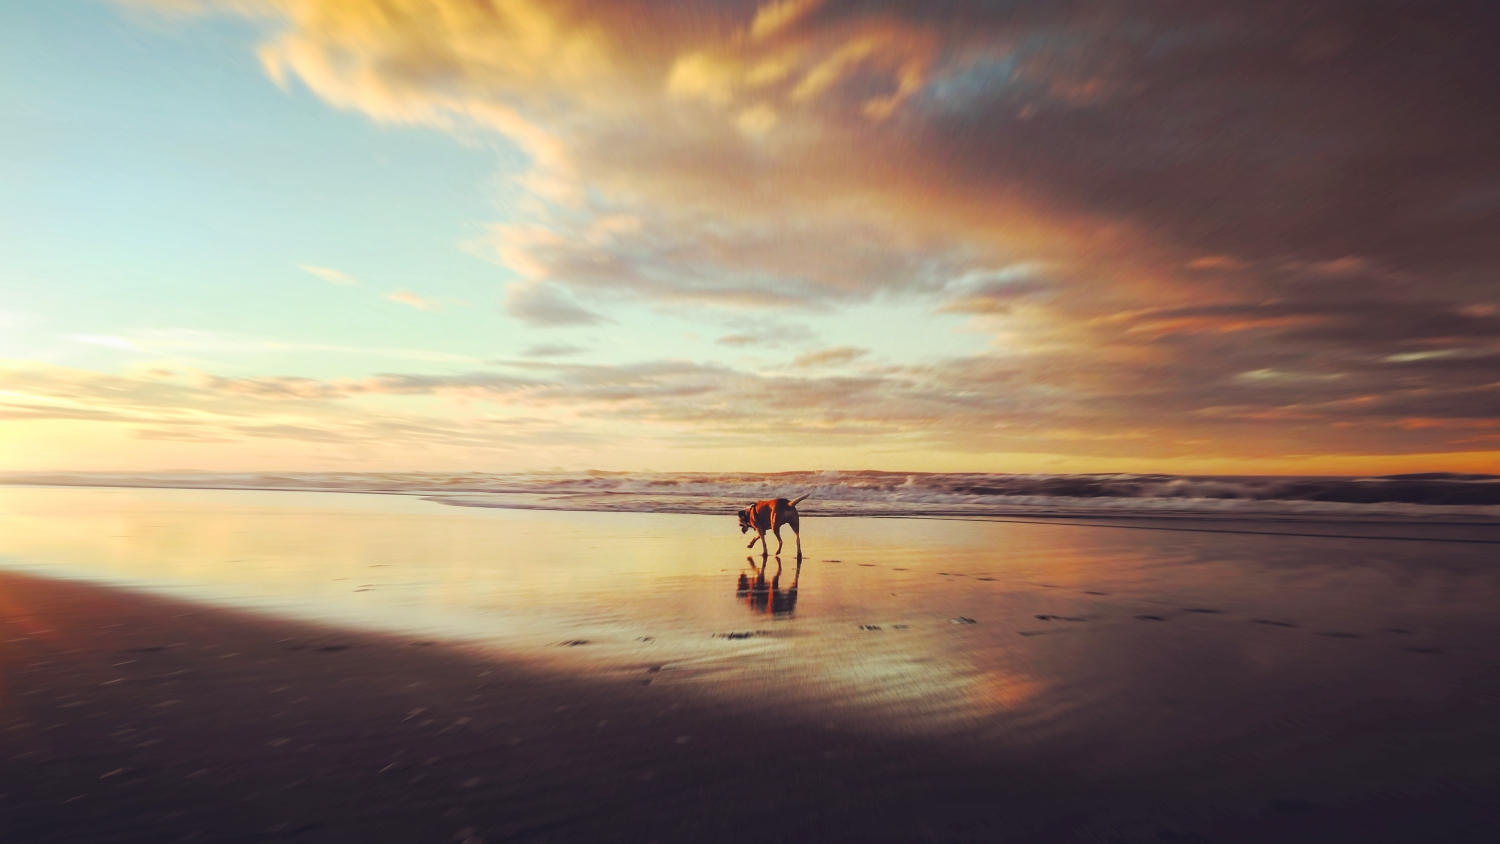 JC at our favourite beach doing what she loves most - exploring, sniffing driftwood and catching sunsets.